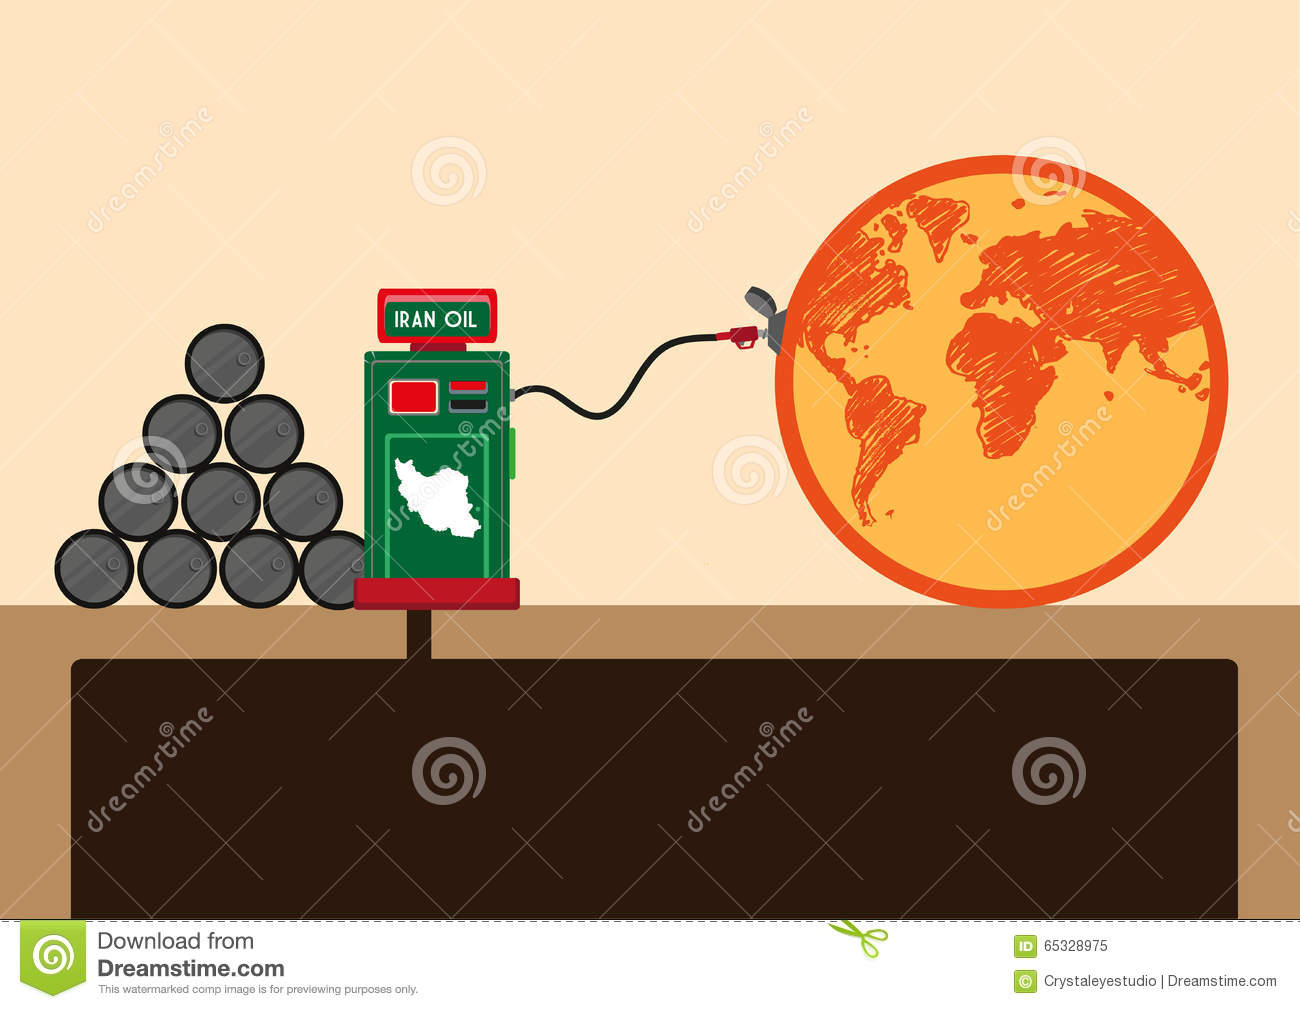 Islamic Republic Of Iran Supplies Oil To The World After Lifting.